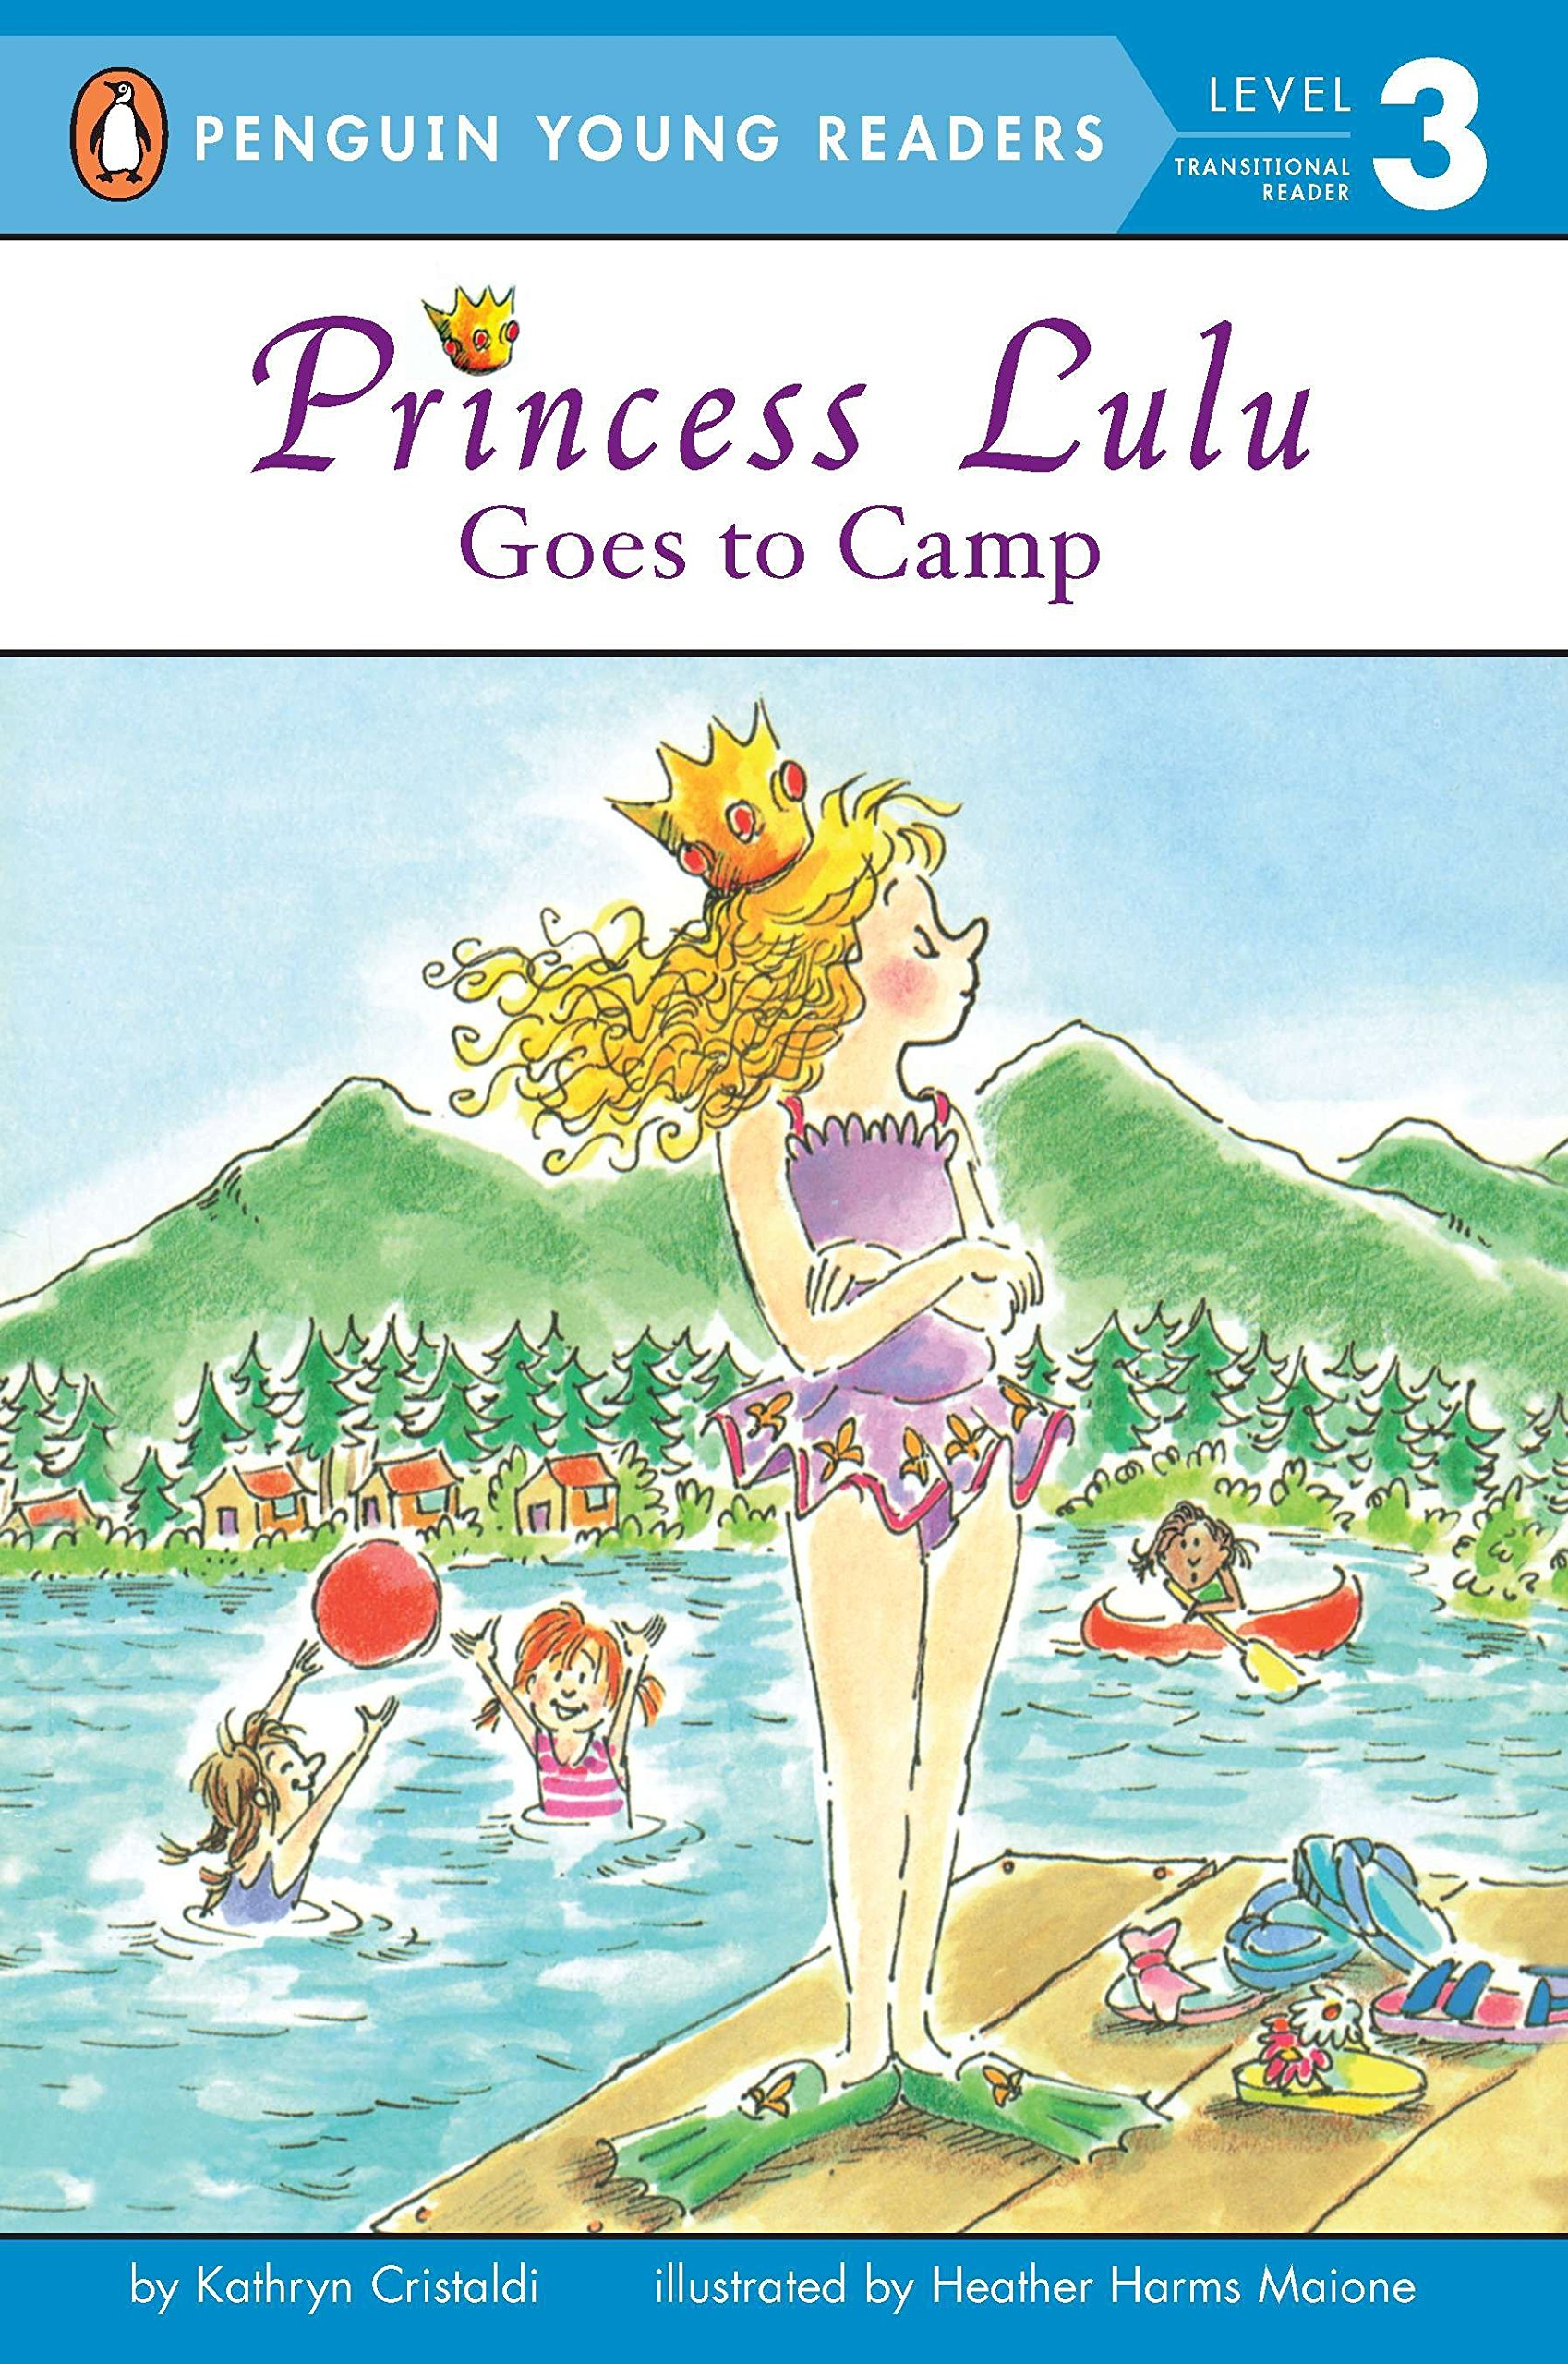 Amazon.com: Princess Lulu Goes to Camp (Penguin Young Readers, Level 3)  (9780448411255): Kathryn Cristaldi, Heather Maione: Books